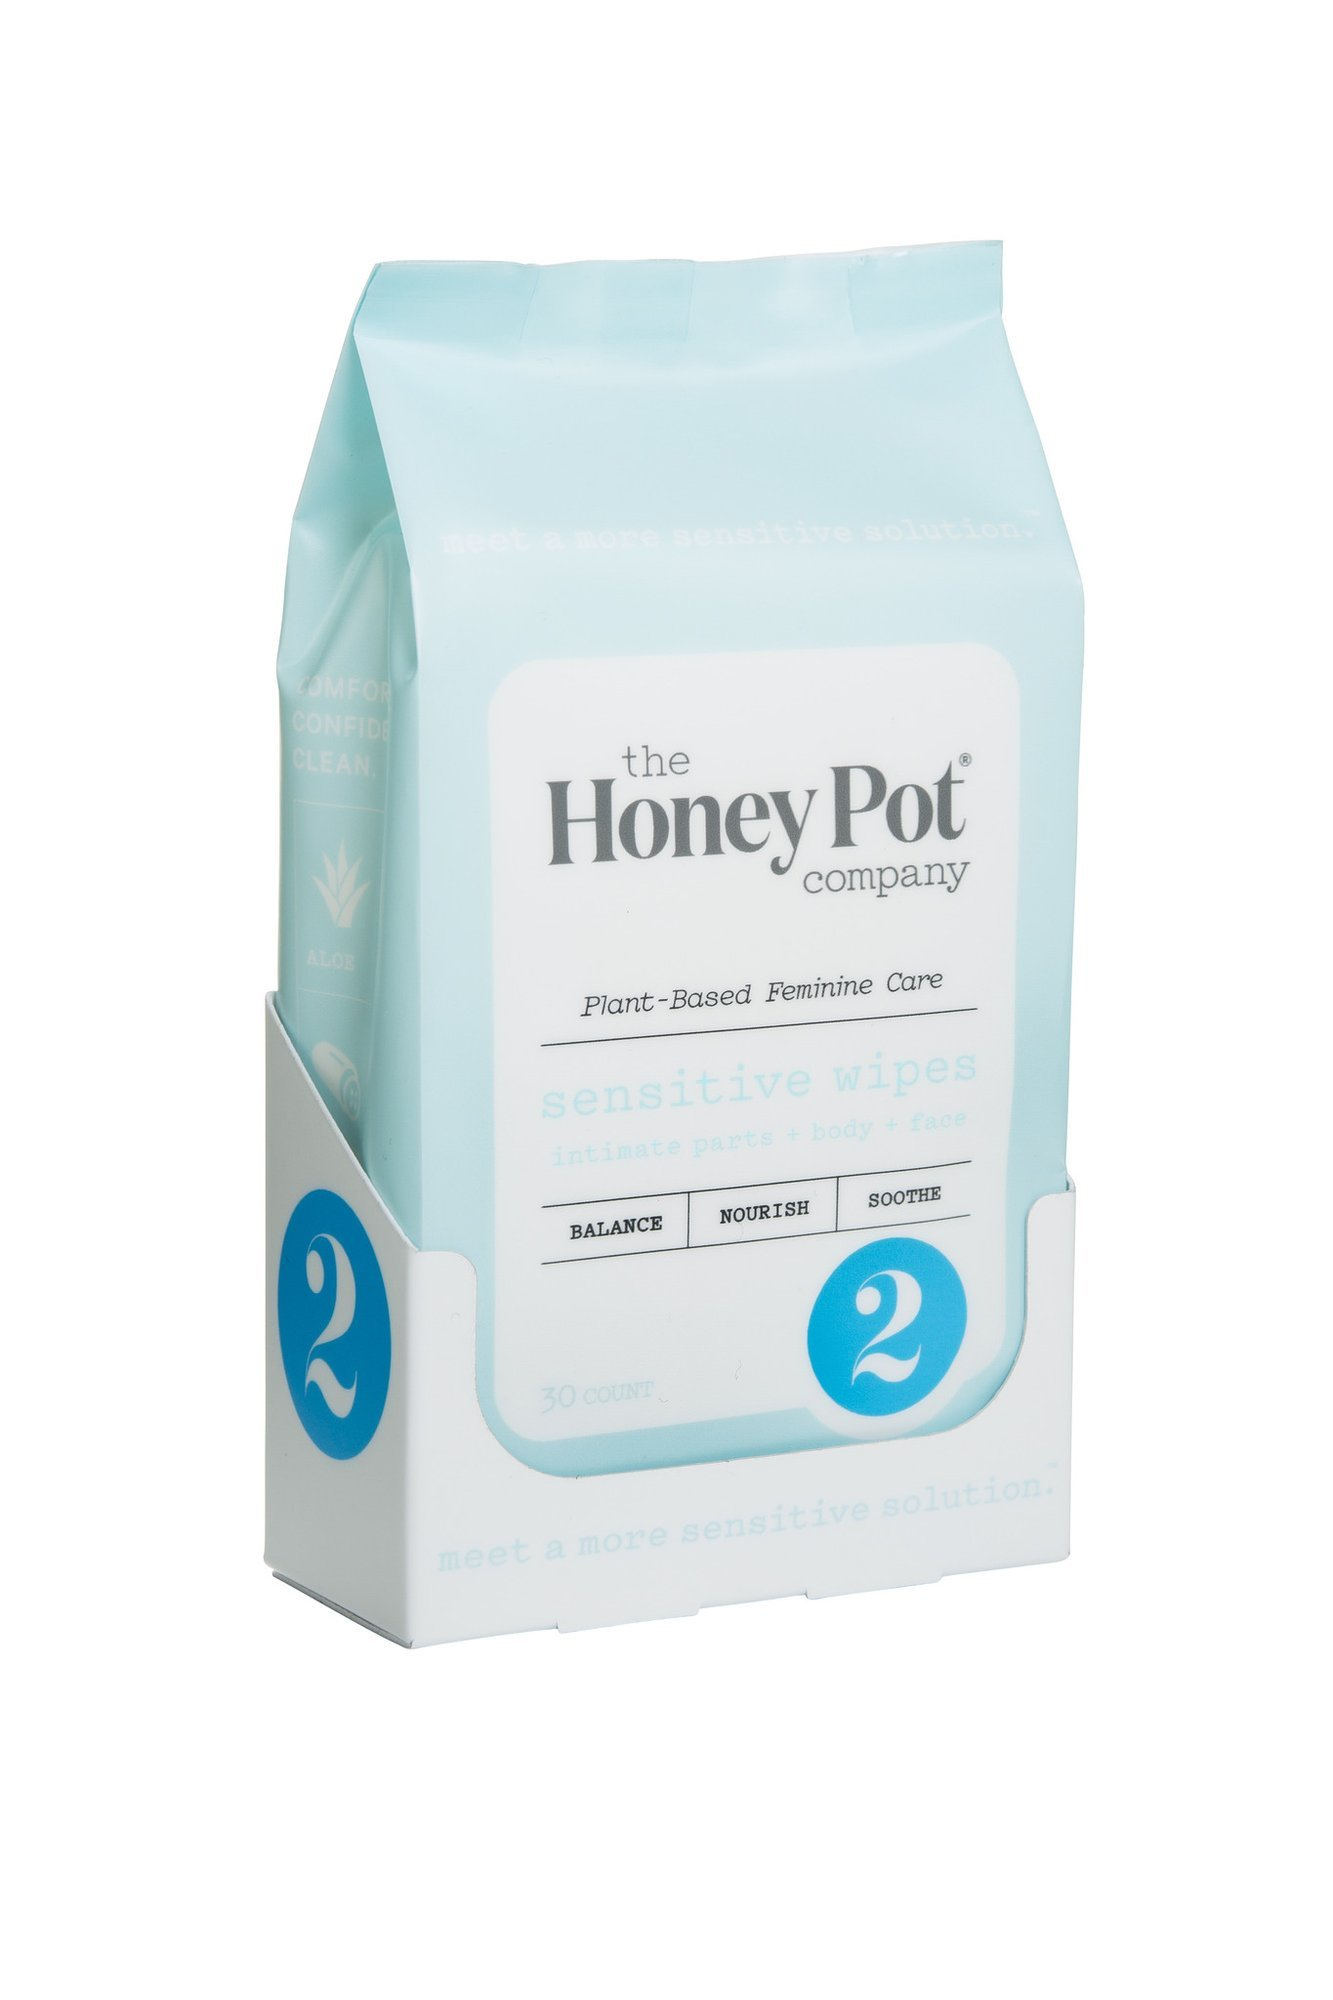 The Honey Pot Normal Feminine Hygiene Wipes – Natural, Herbal Feminine Hygiene Wipes, (30 Count) For Normal Skin Types